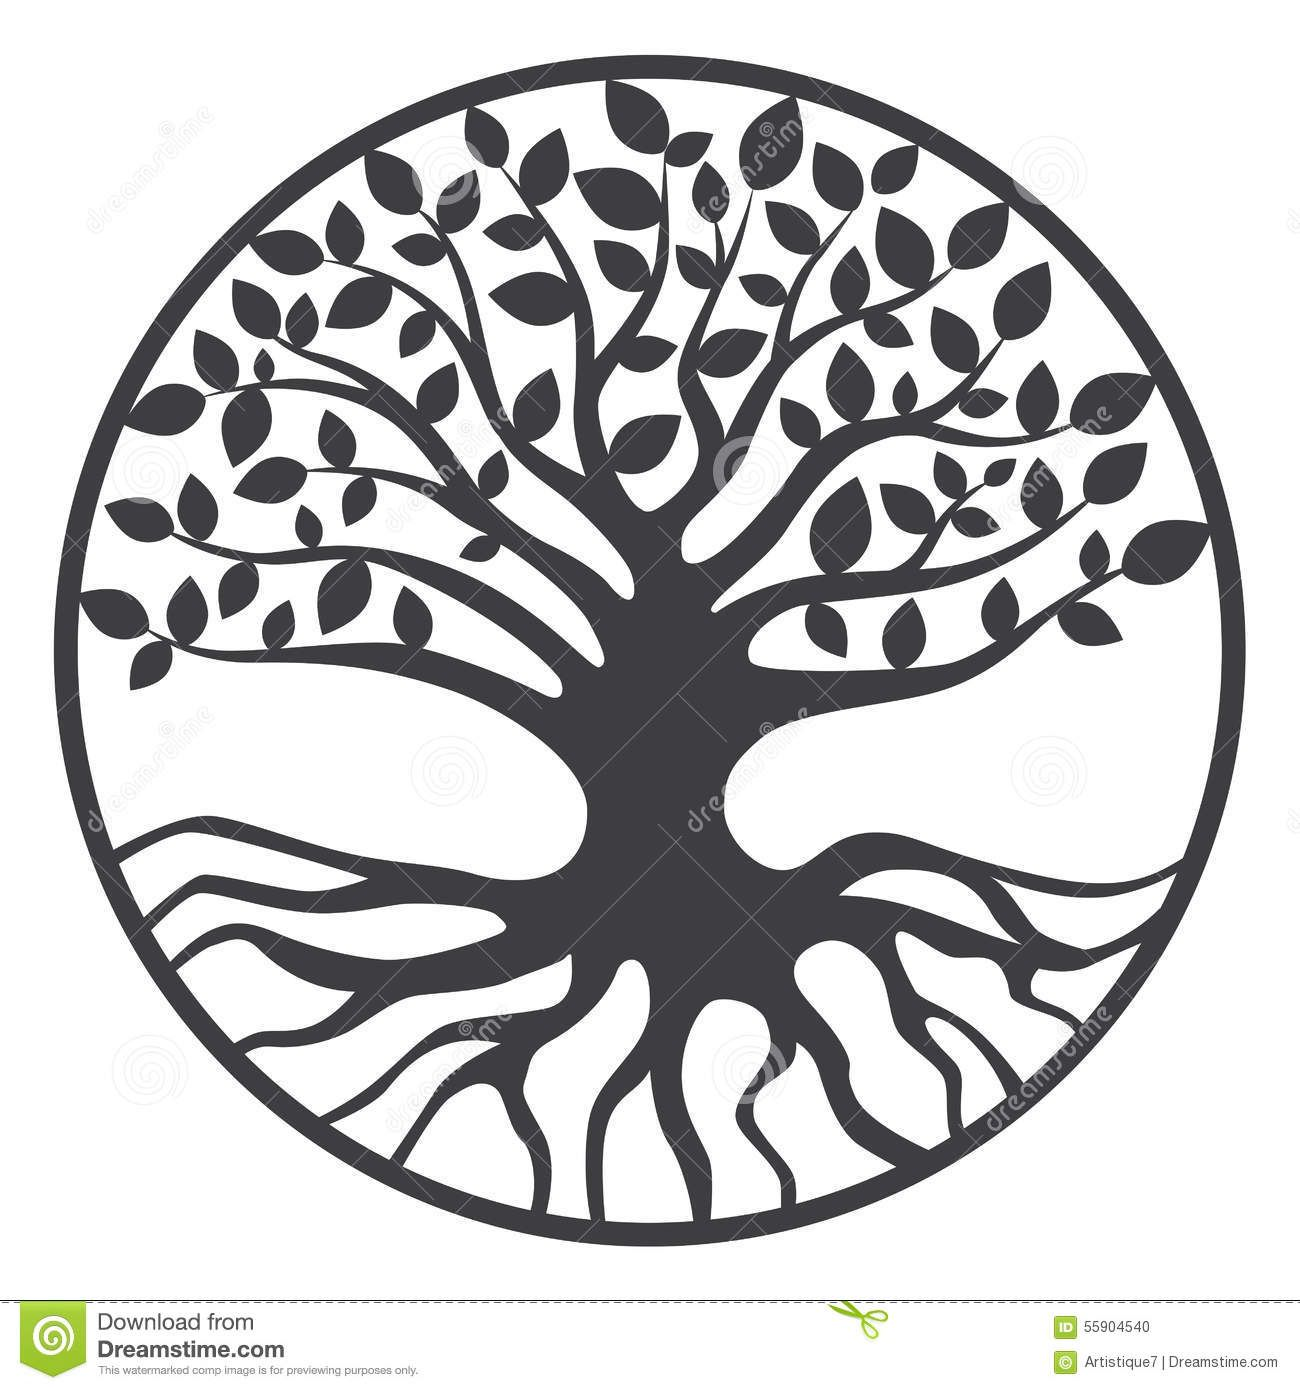 Tree Of Life Clip Art Black And White Tree Of Life Royalty F...